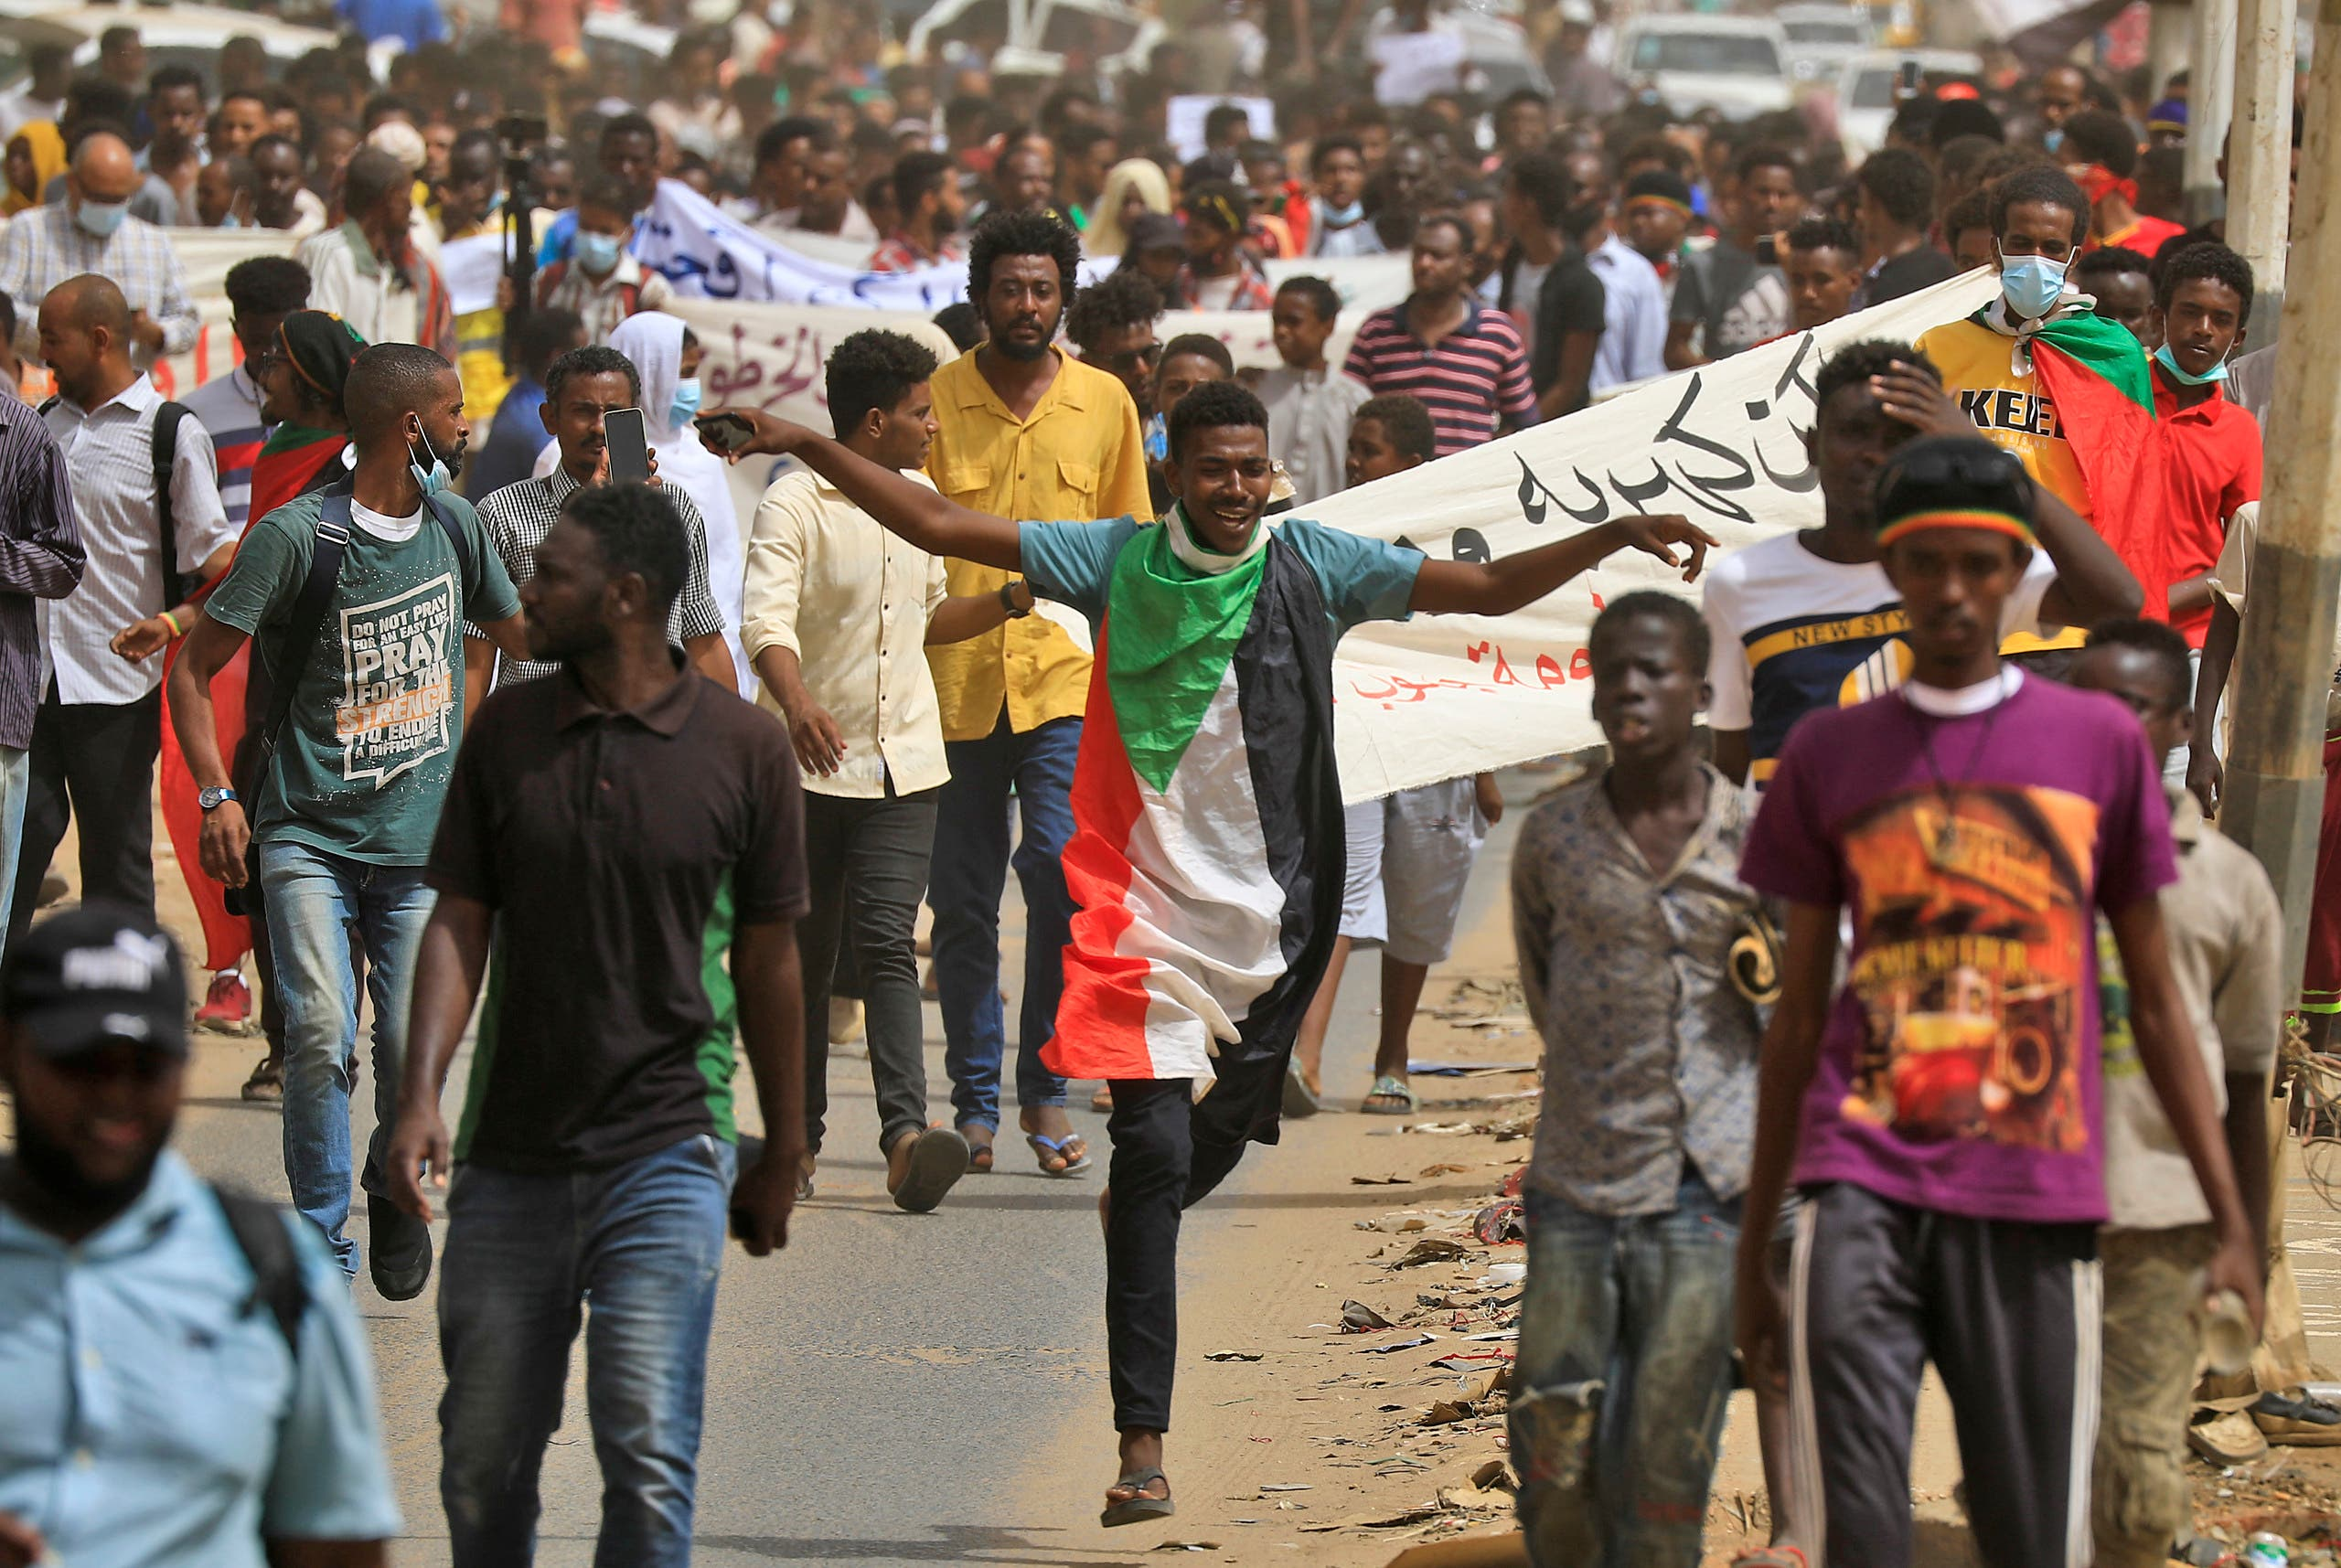 Sudanese protesters take part in a demonstration in the capital Khartoum on June 30, 2021, urging the government to step down over delayed justice and recent harsh economic reforms. (AFP)